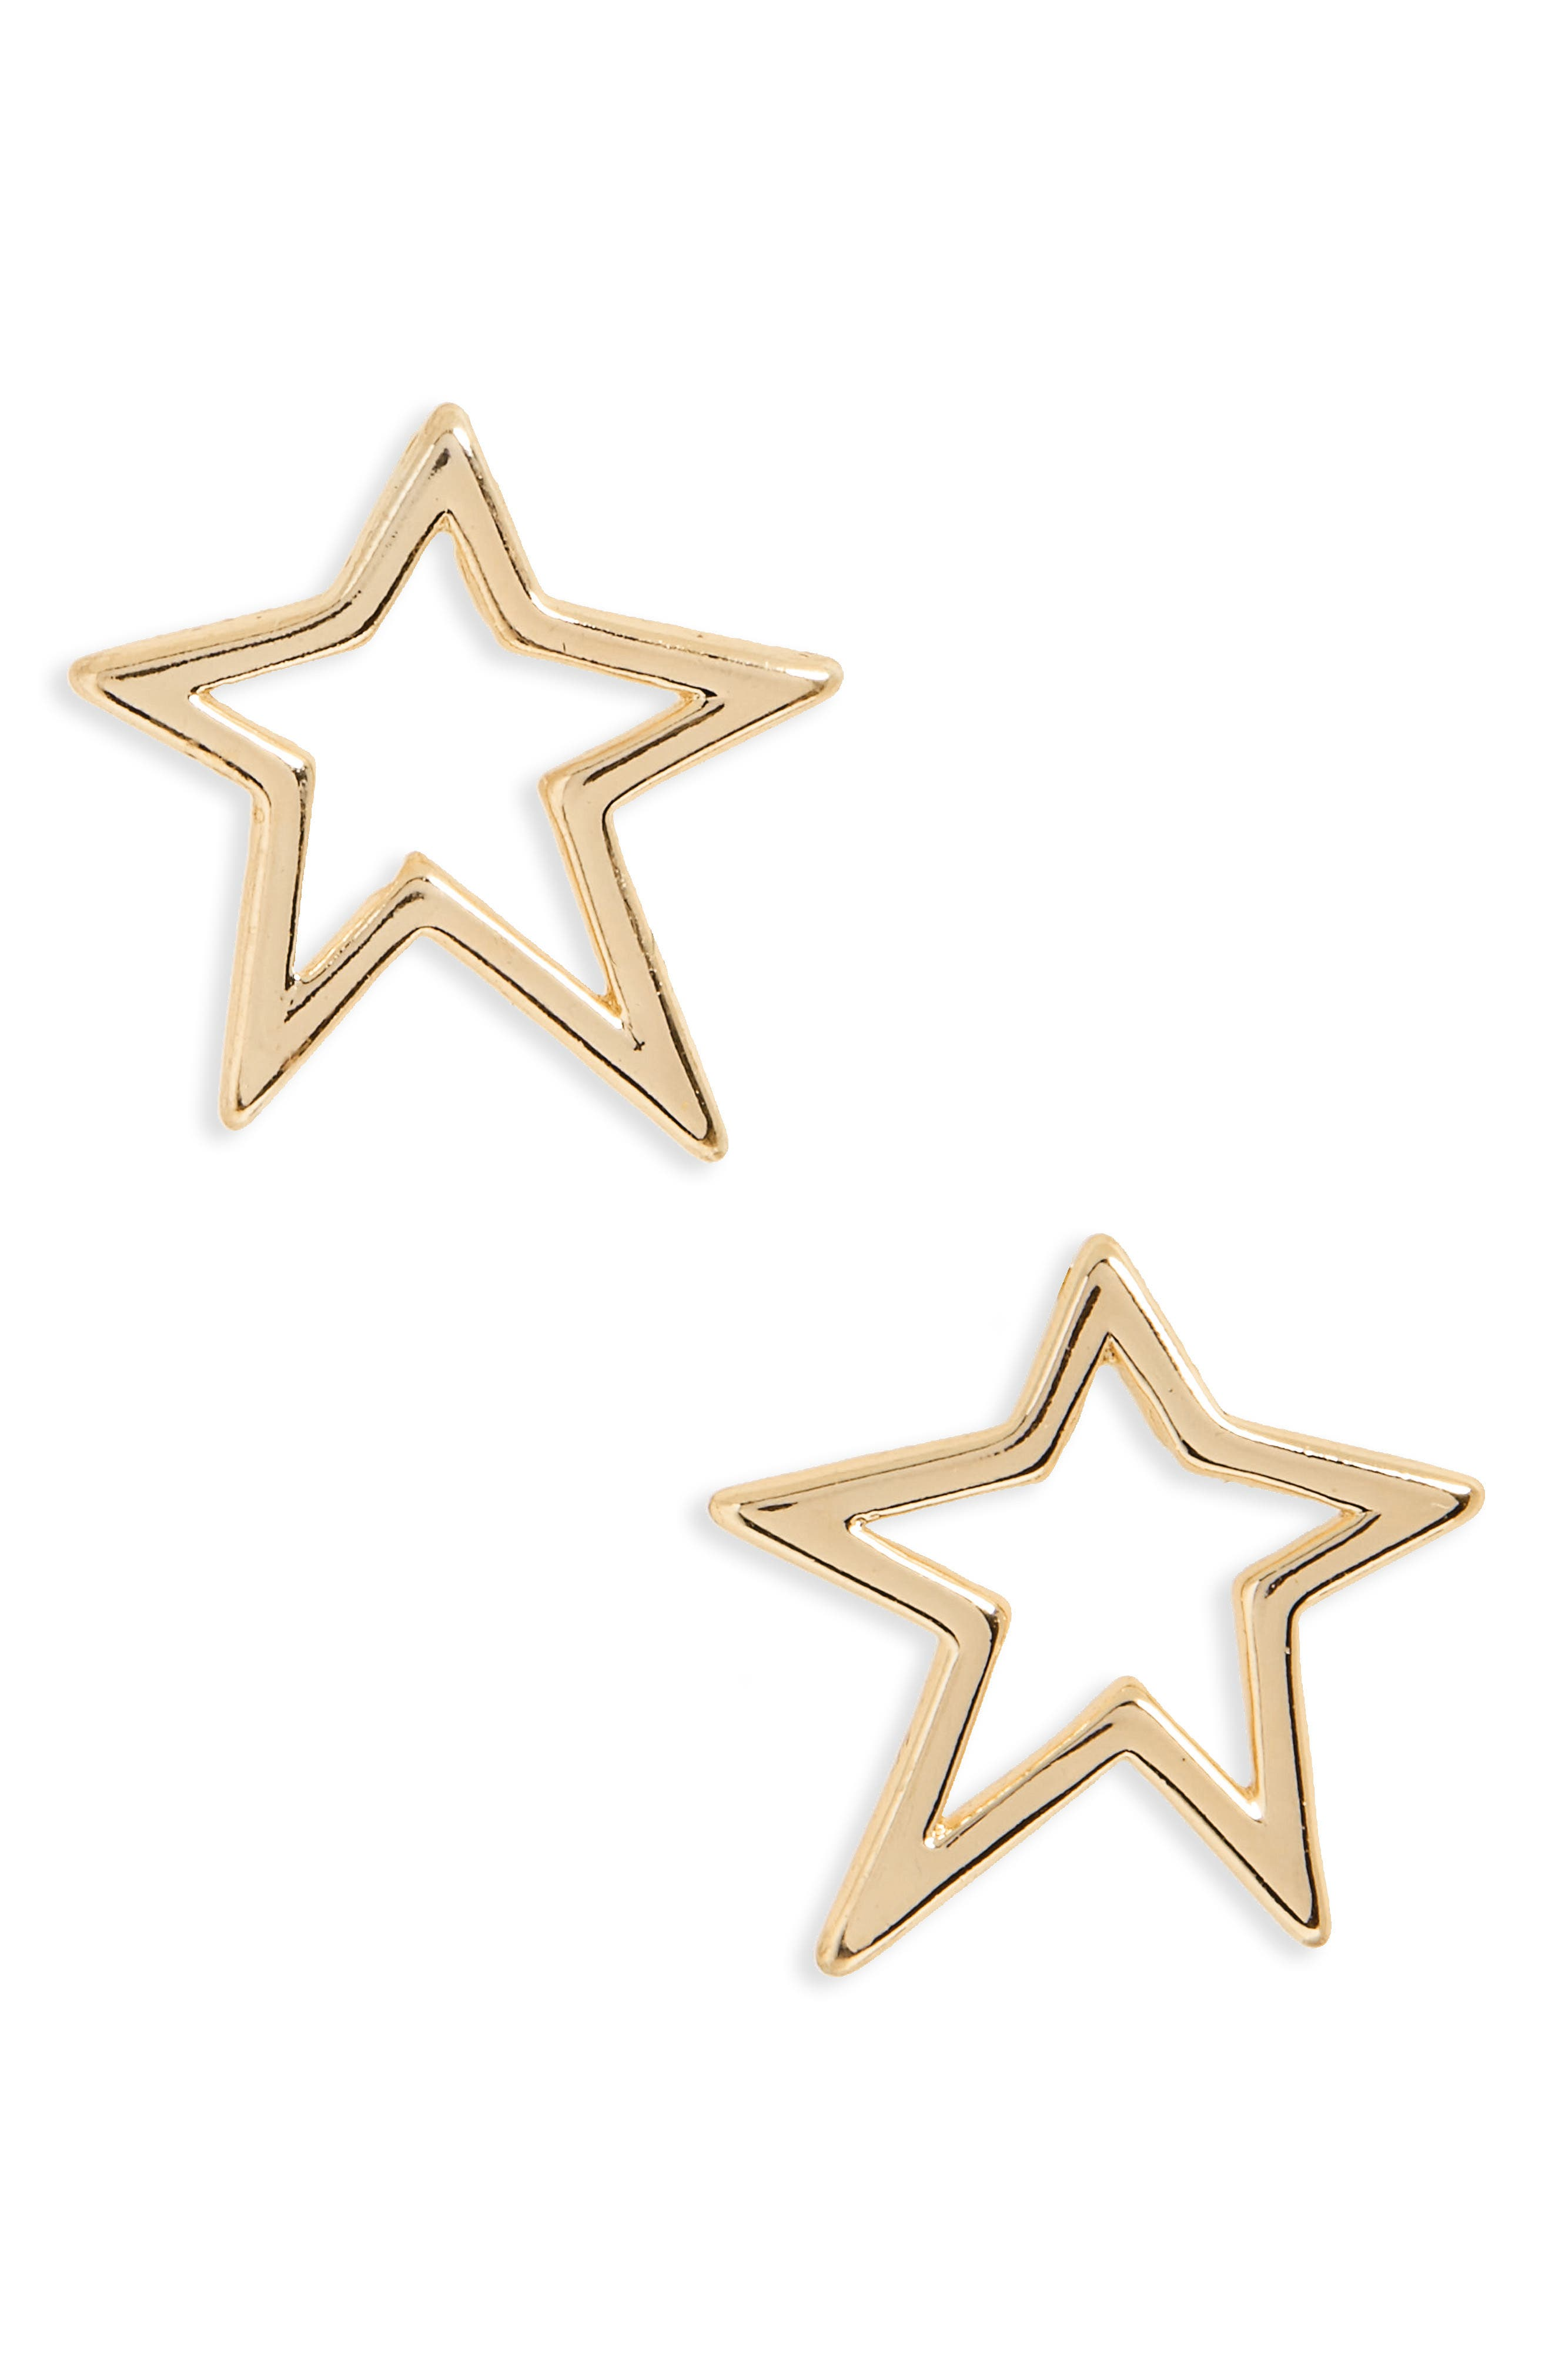 Star Stud Earrings,                             Main thumbnail 1, color,                             Gold